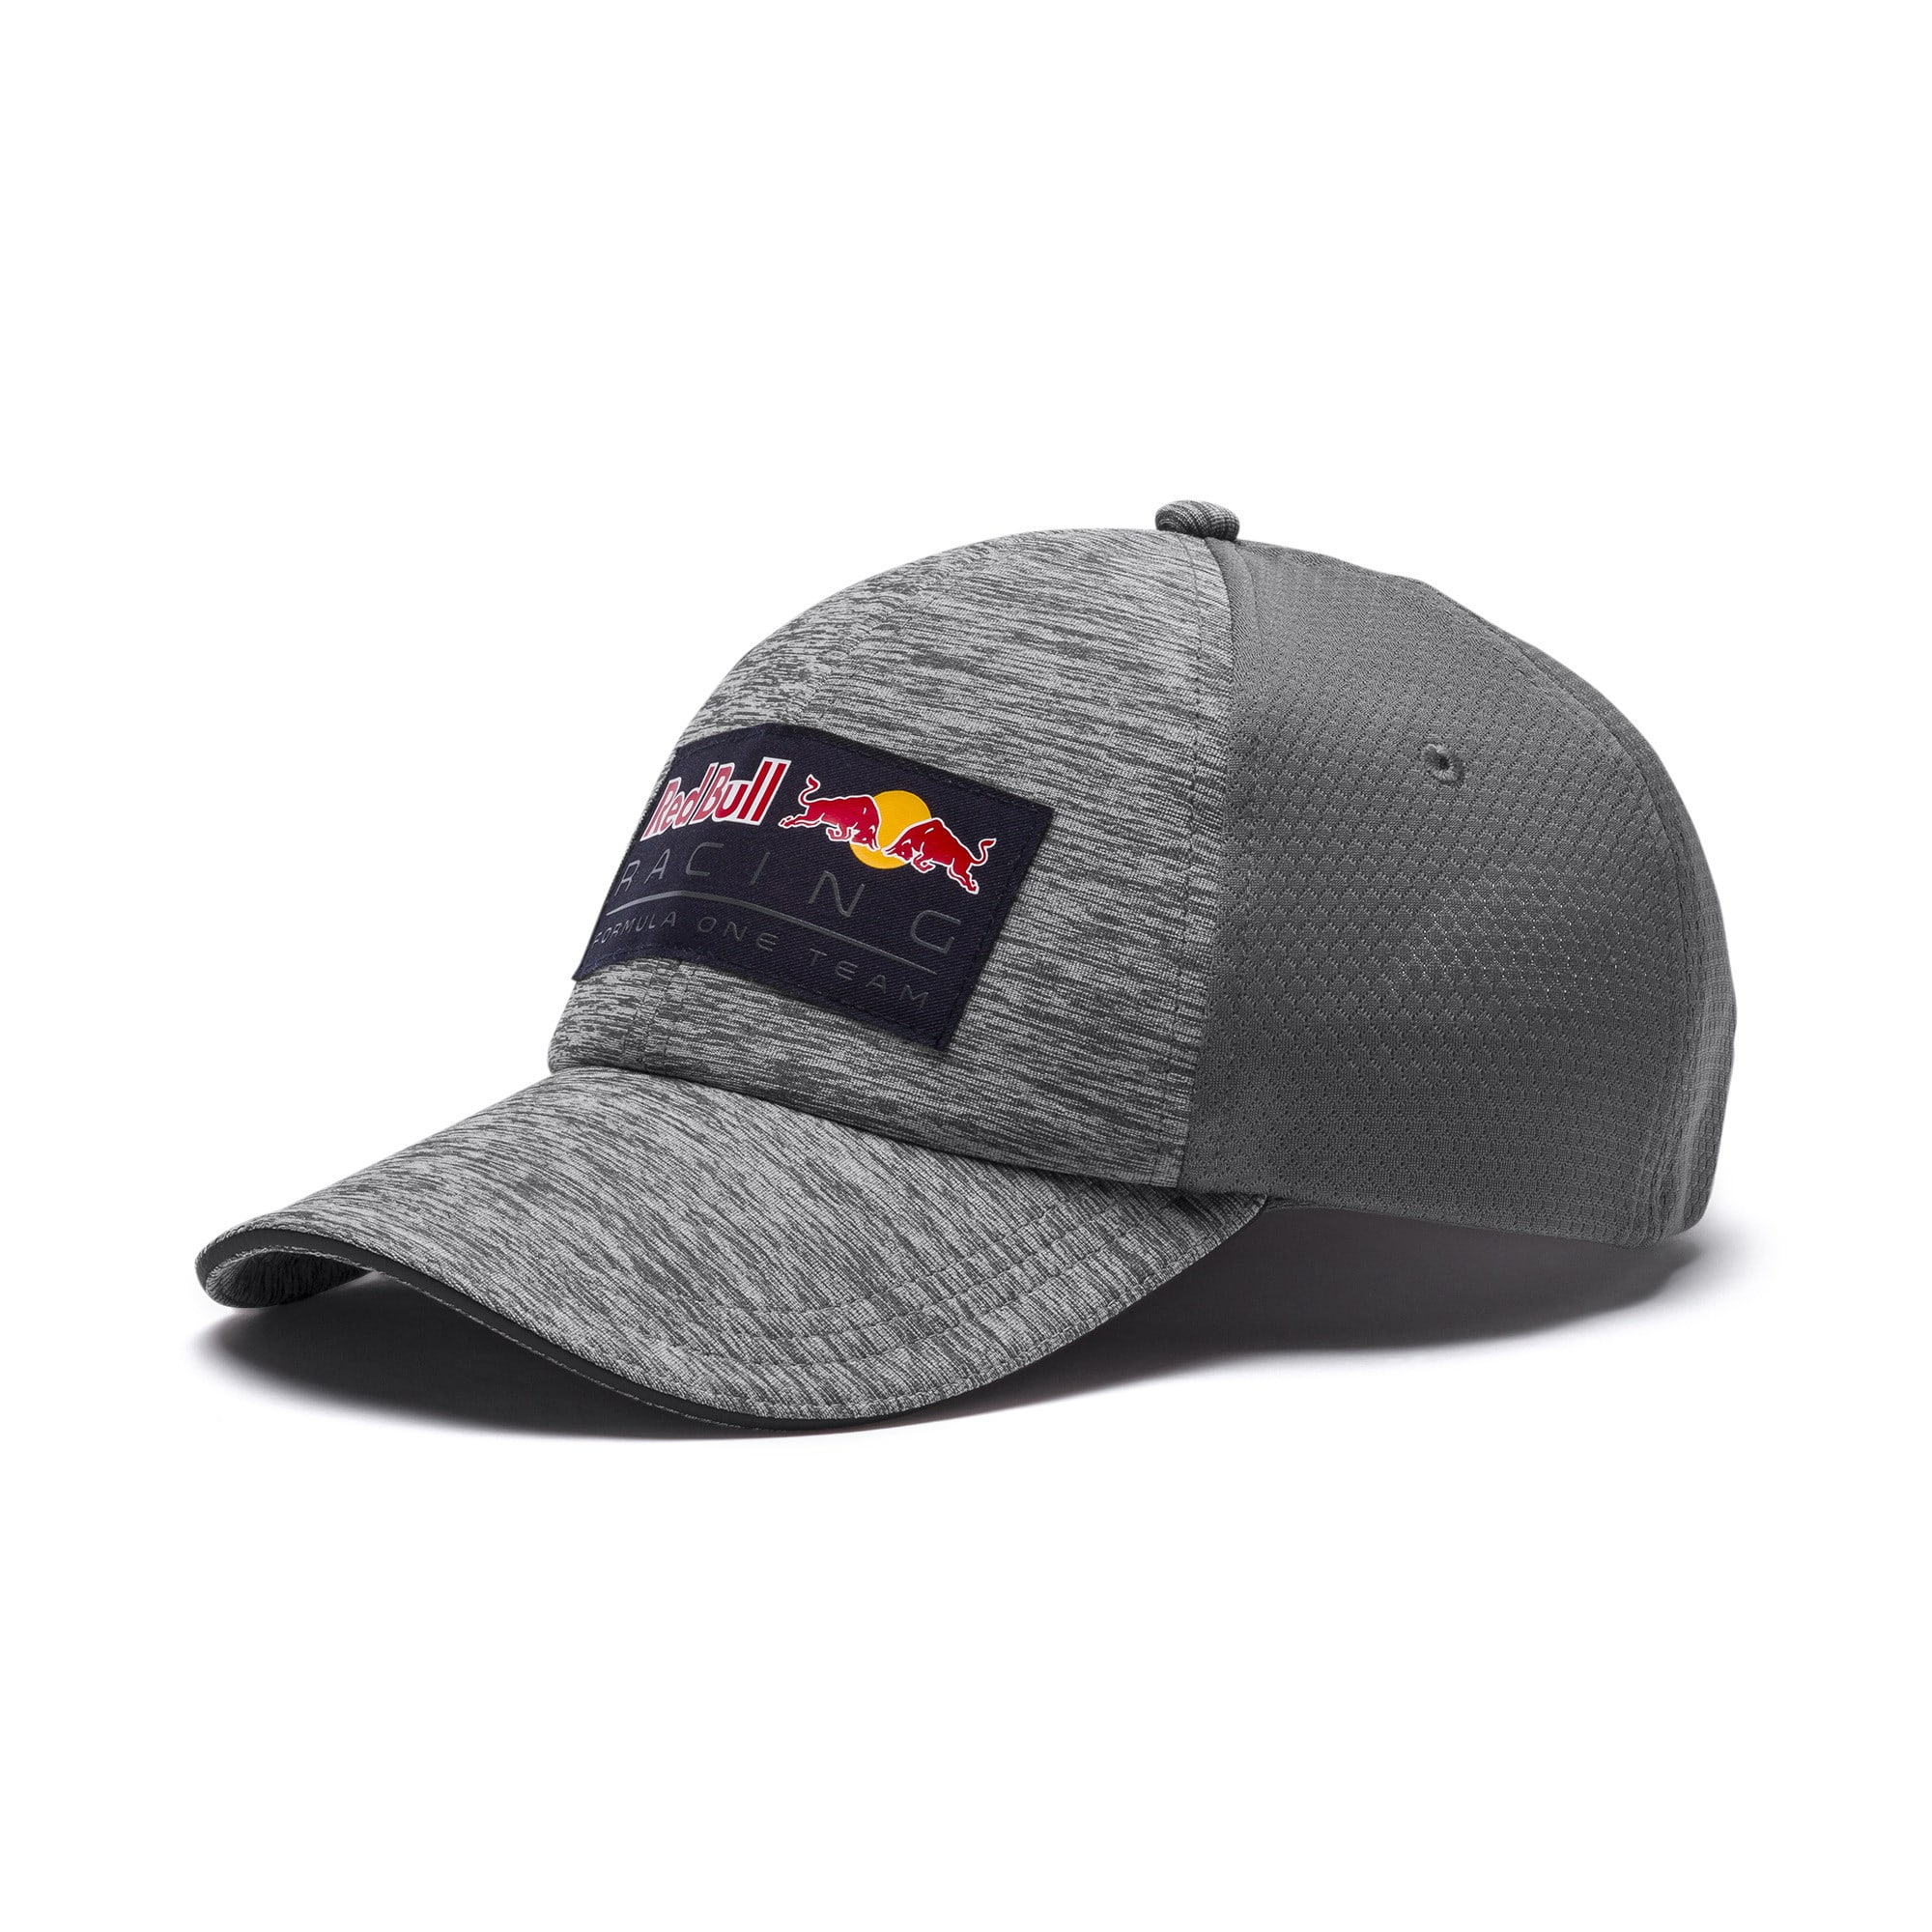 Details about Puma Red Bull Racing Lifestyle Grey Hat